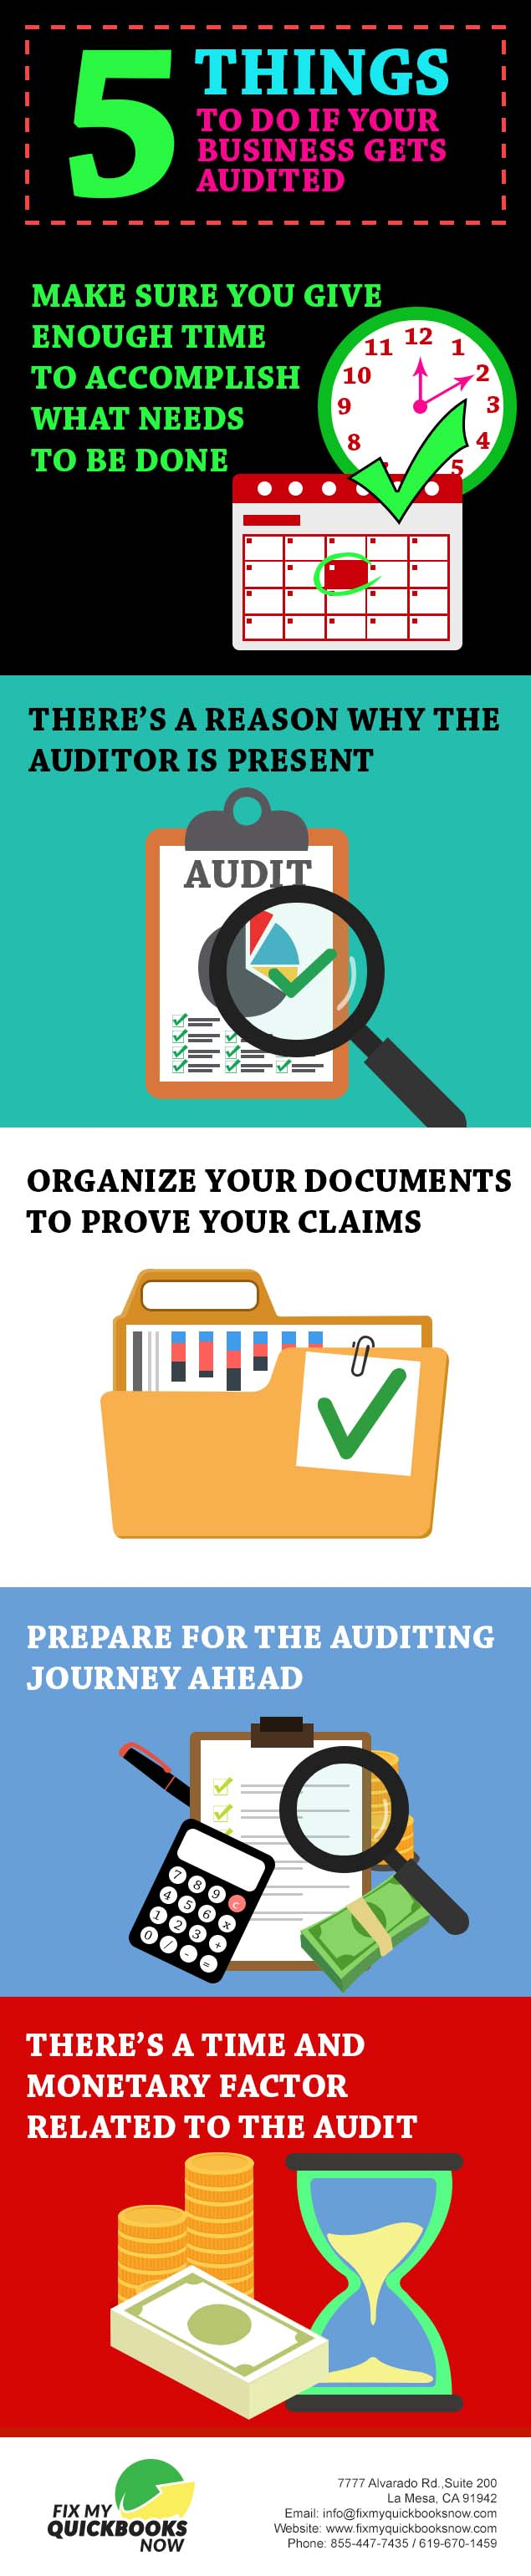 What to do if your business gets audited